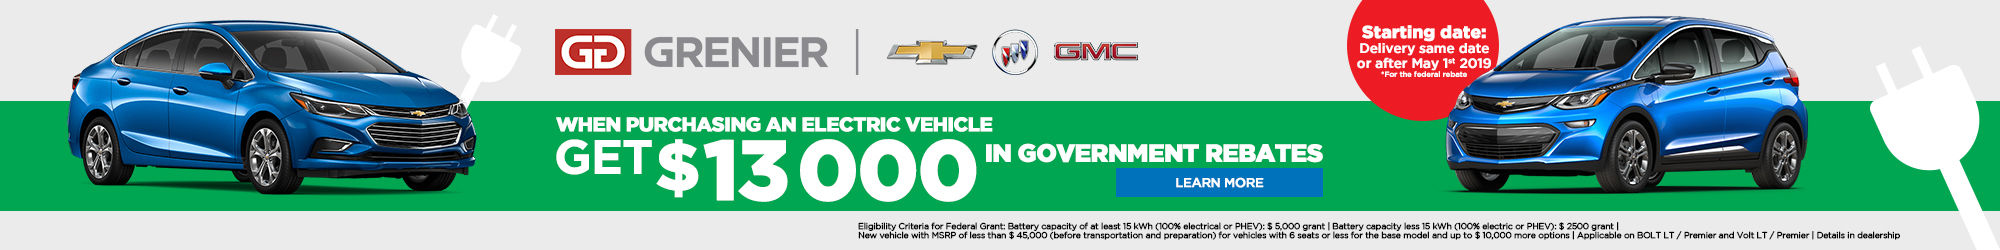 Government rebate for electric vehicles (Copy)